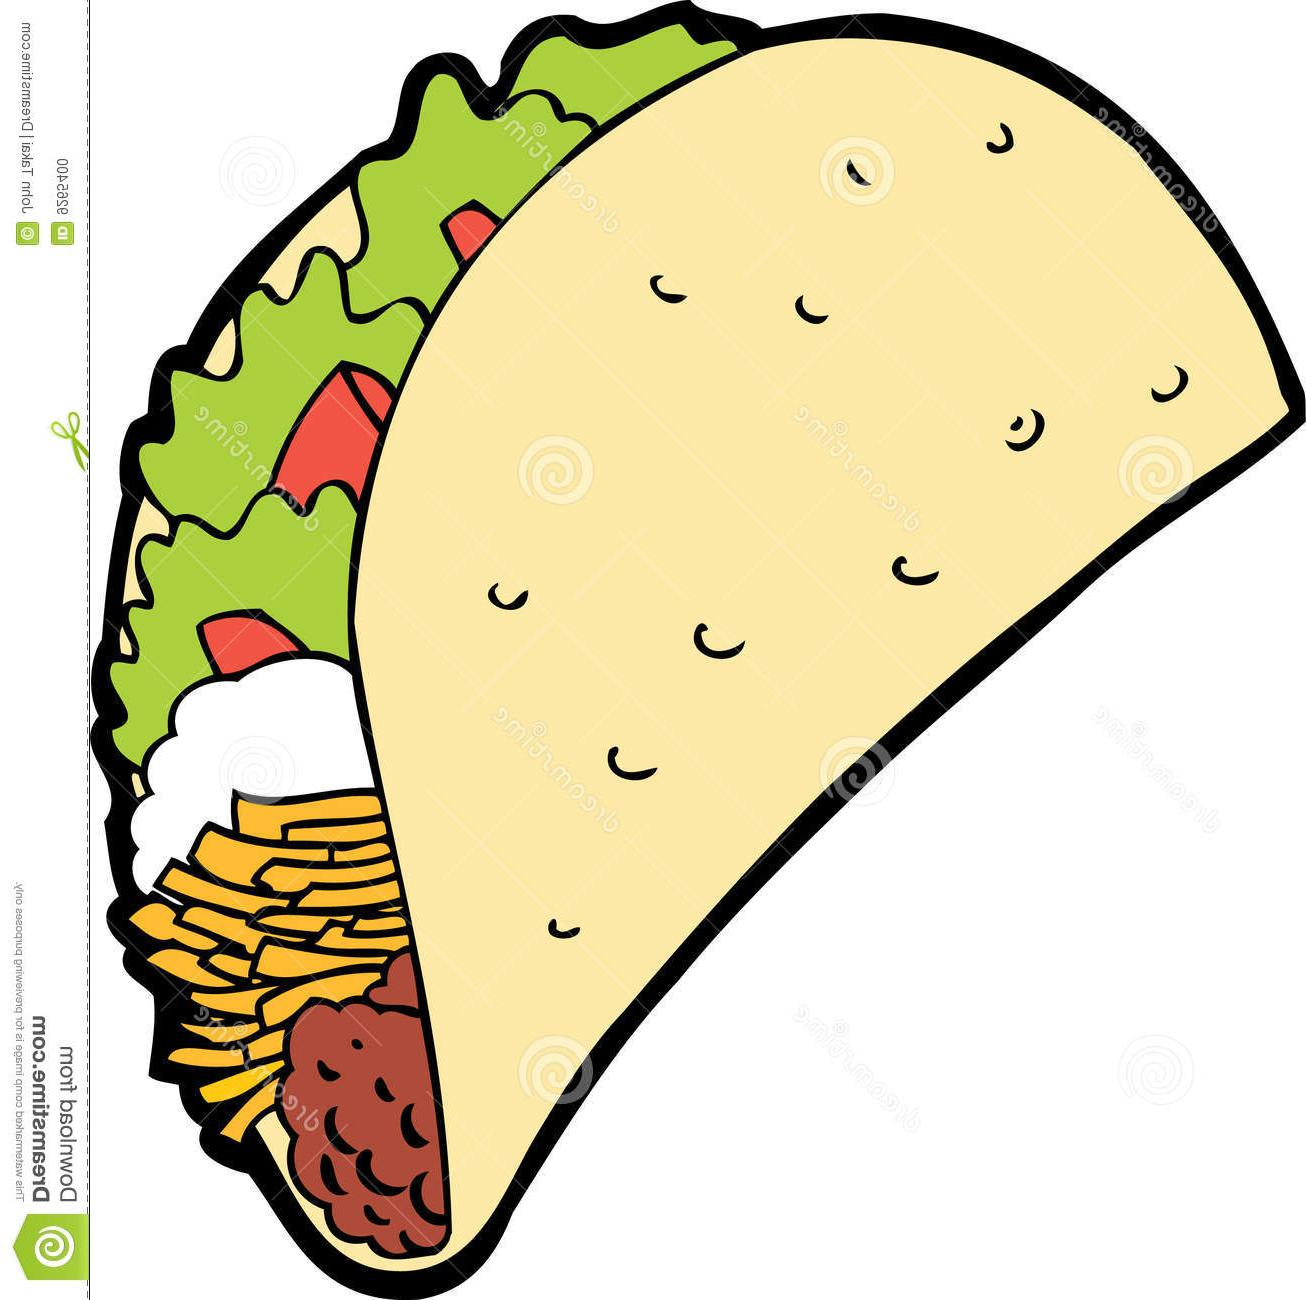 taco drawing at getdrawings com free for personal use taco drawing rh getdrawings com taco tuesday clipart free taco clipart images